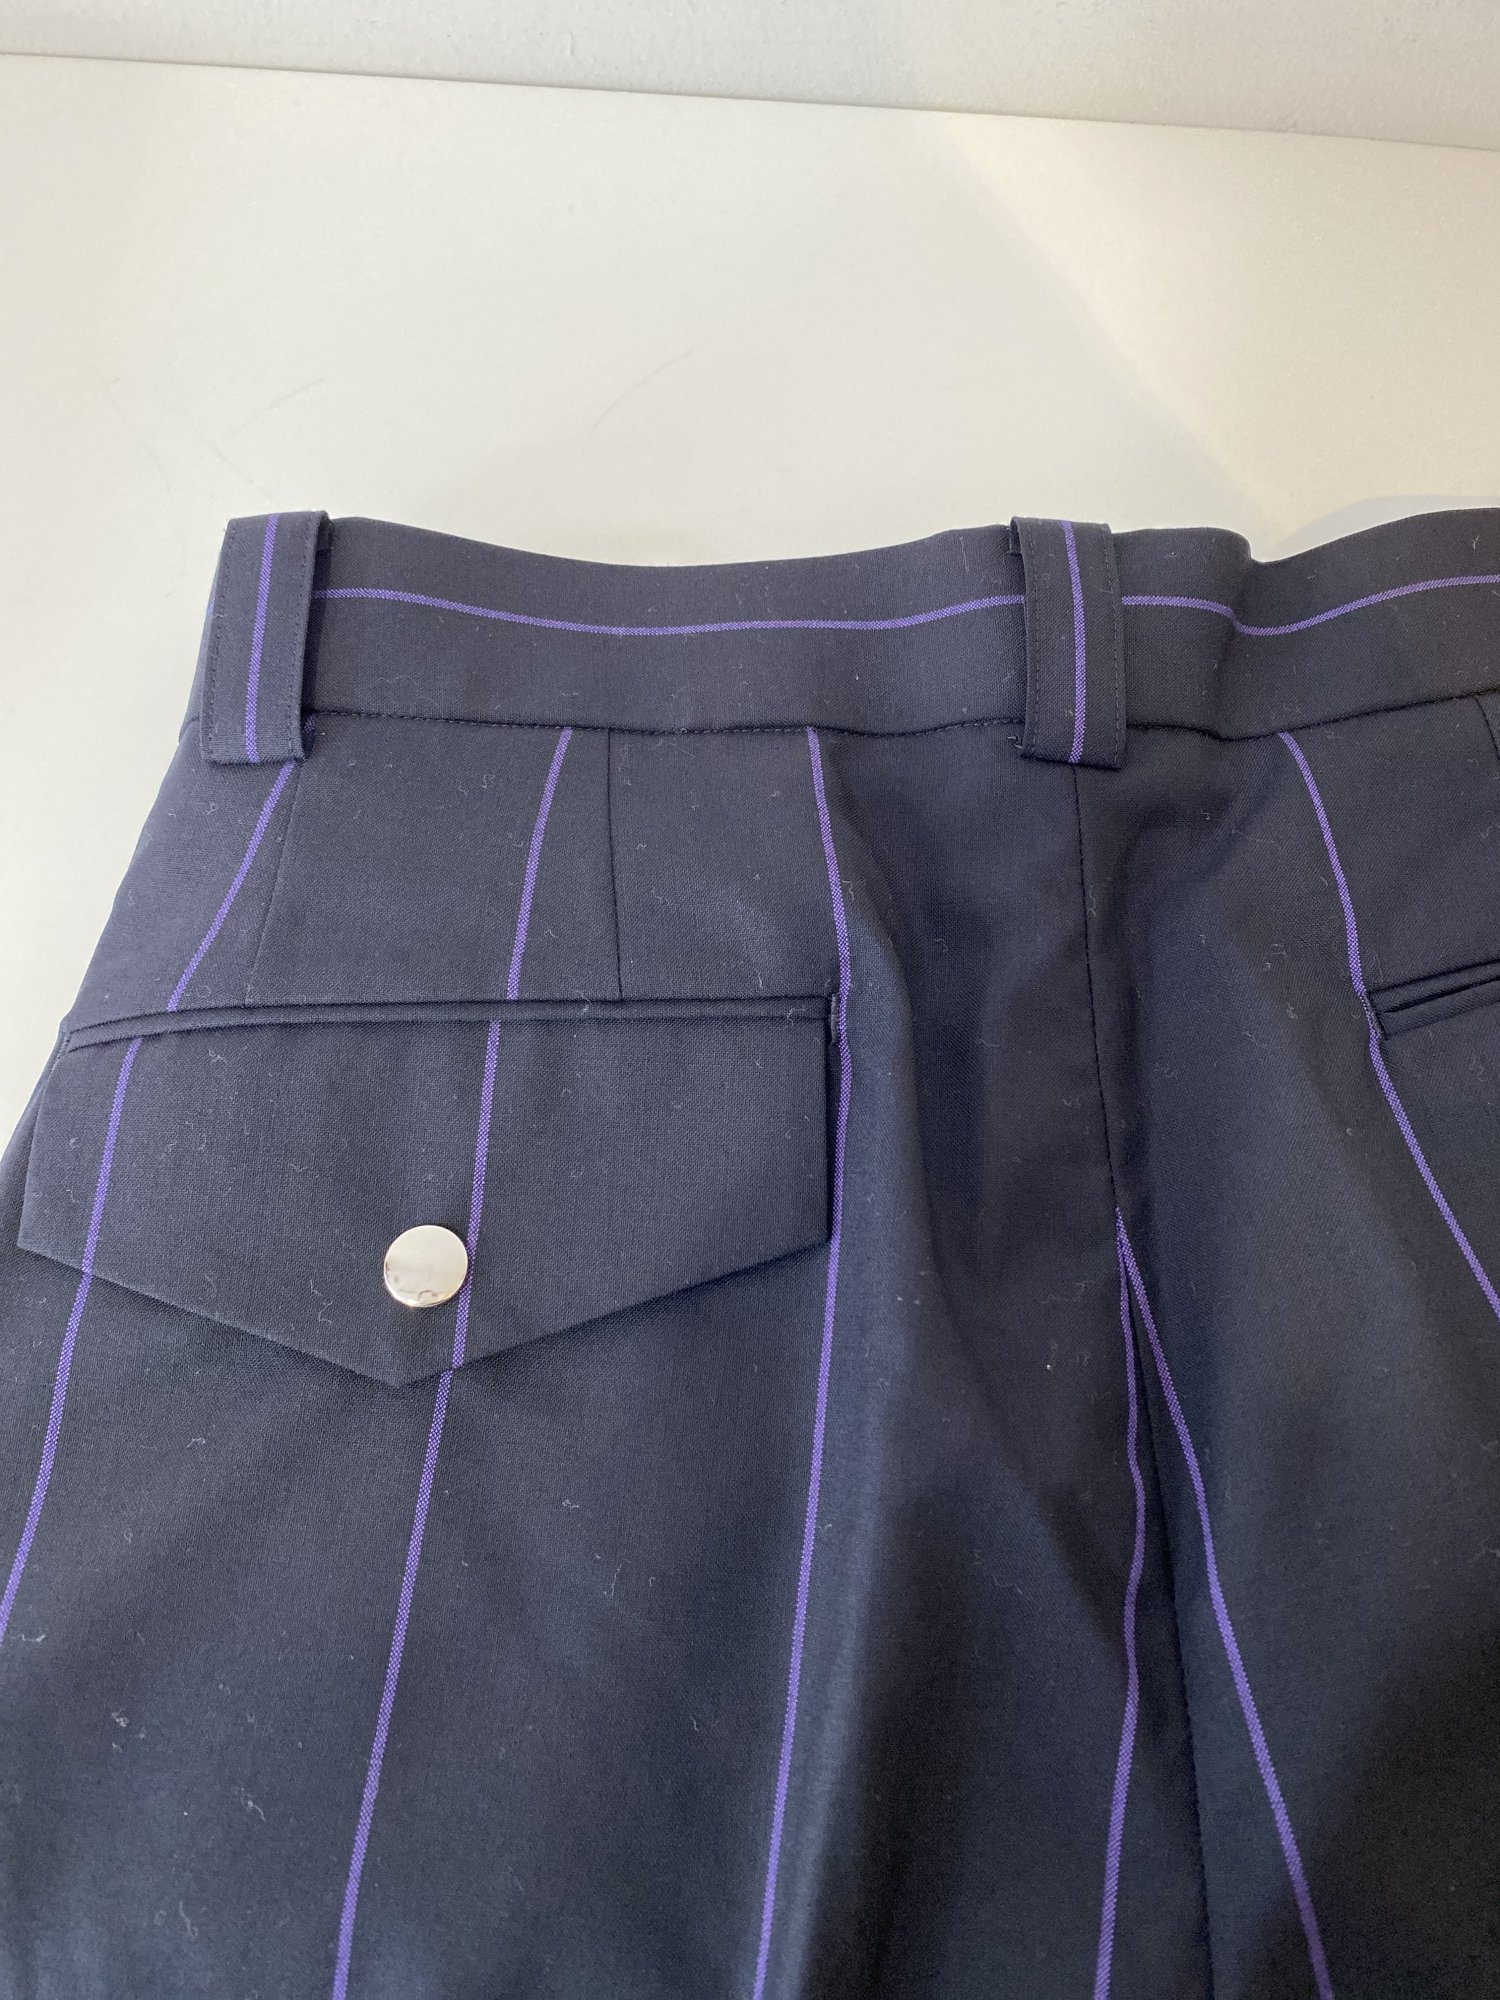 LITTLEBIG<br />Stripe Short Trousers / Navy <img class='new_mark_img2' src='https://img.shop-pro.jp/img/new/icons14.gif' style='border:none;display:inline;margin:0px;padding:0px;width:auto;' />